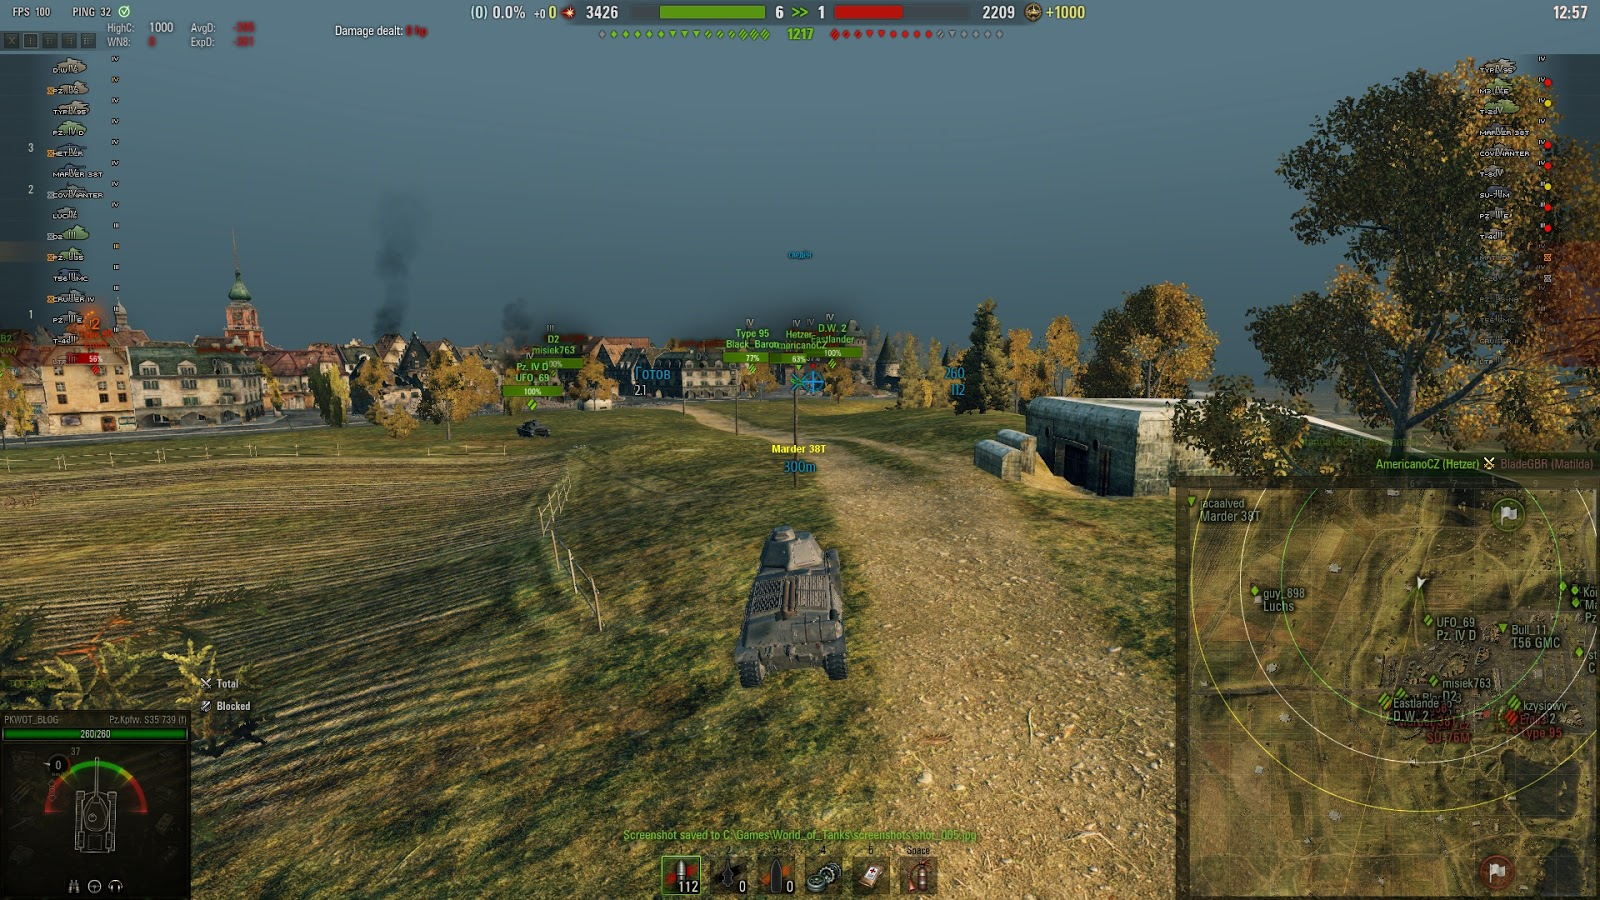 wot zoom-out mod